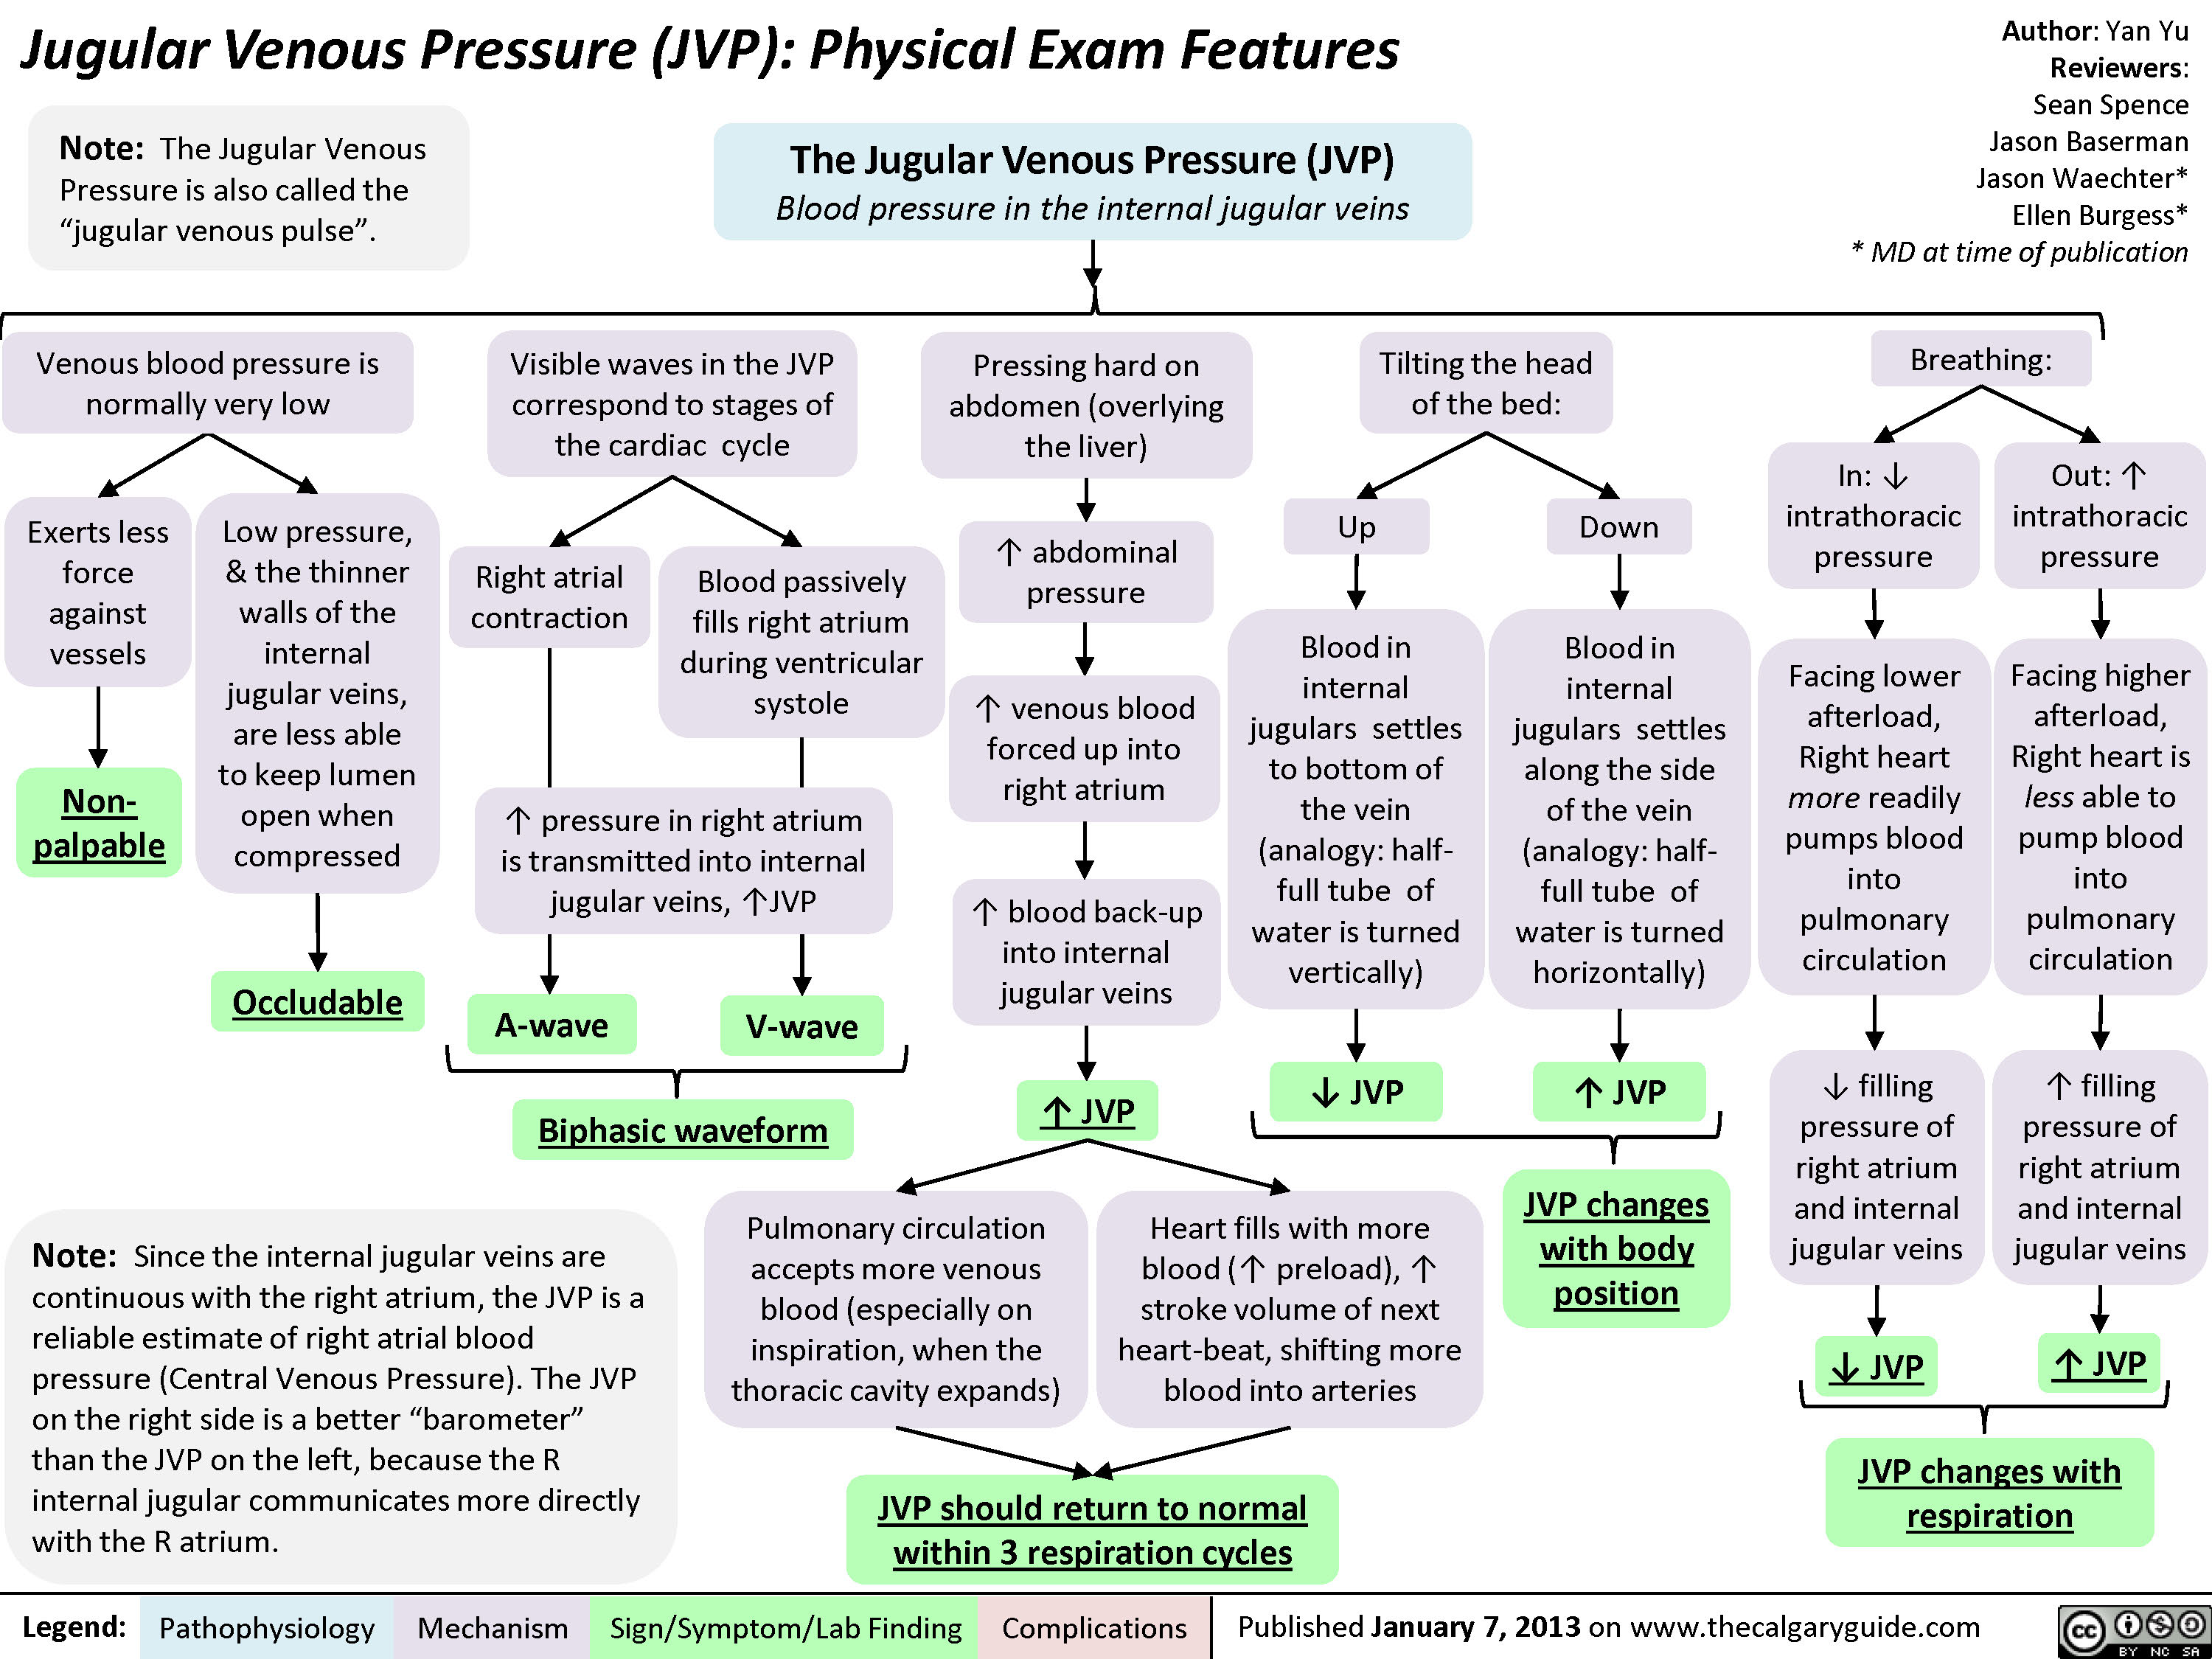 JVP-Physical Exam Features